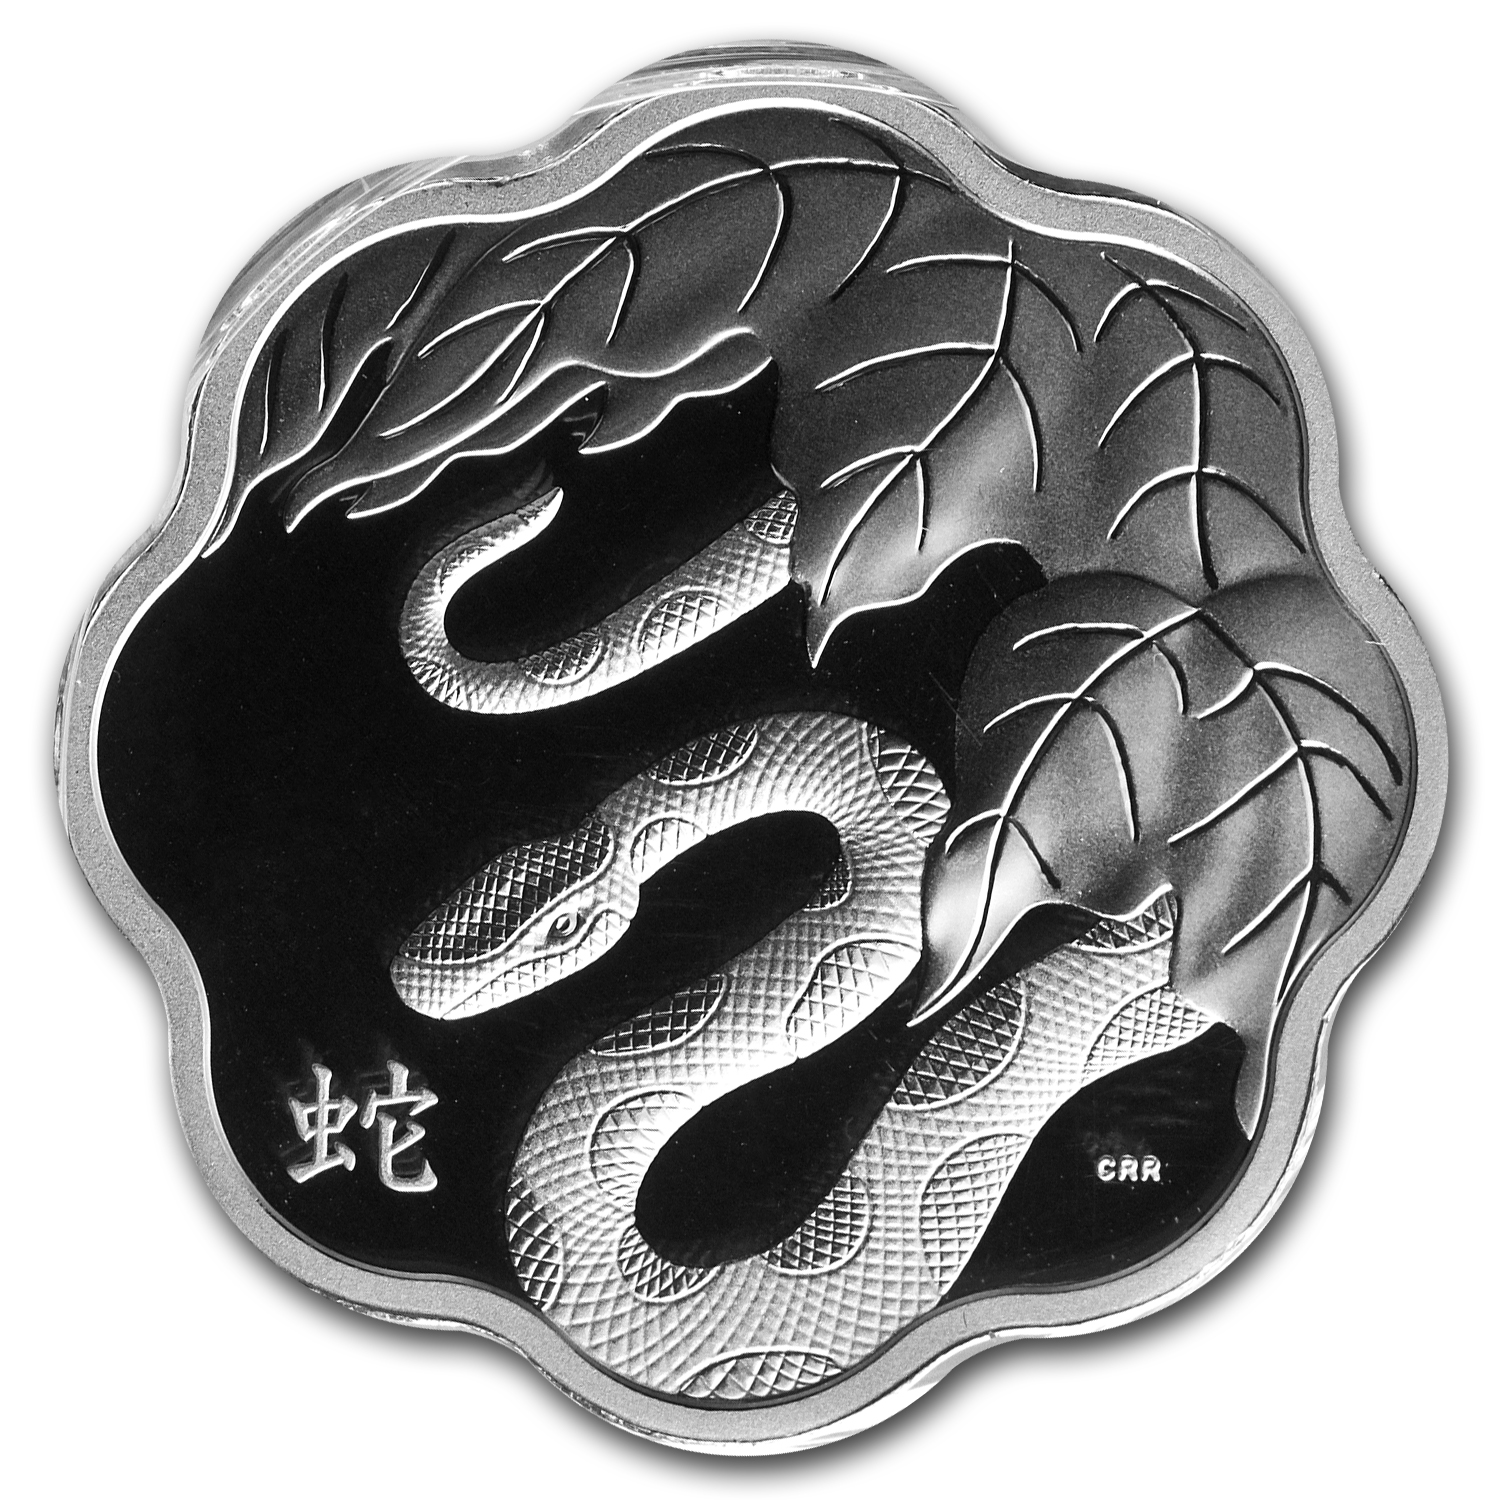 2010-2013 Canada 4-Coin Silver $15 Lunar Lotus Prf Set (Showcase)